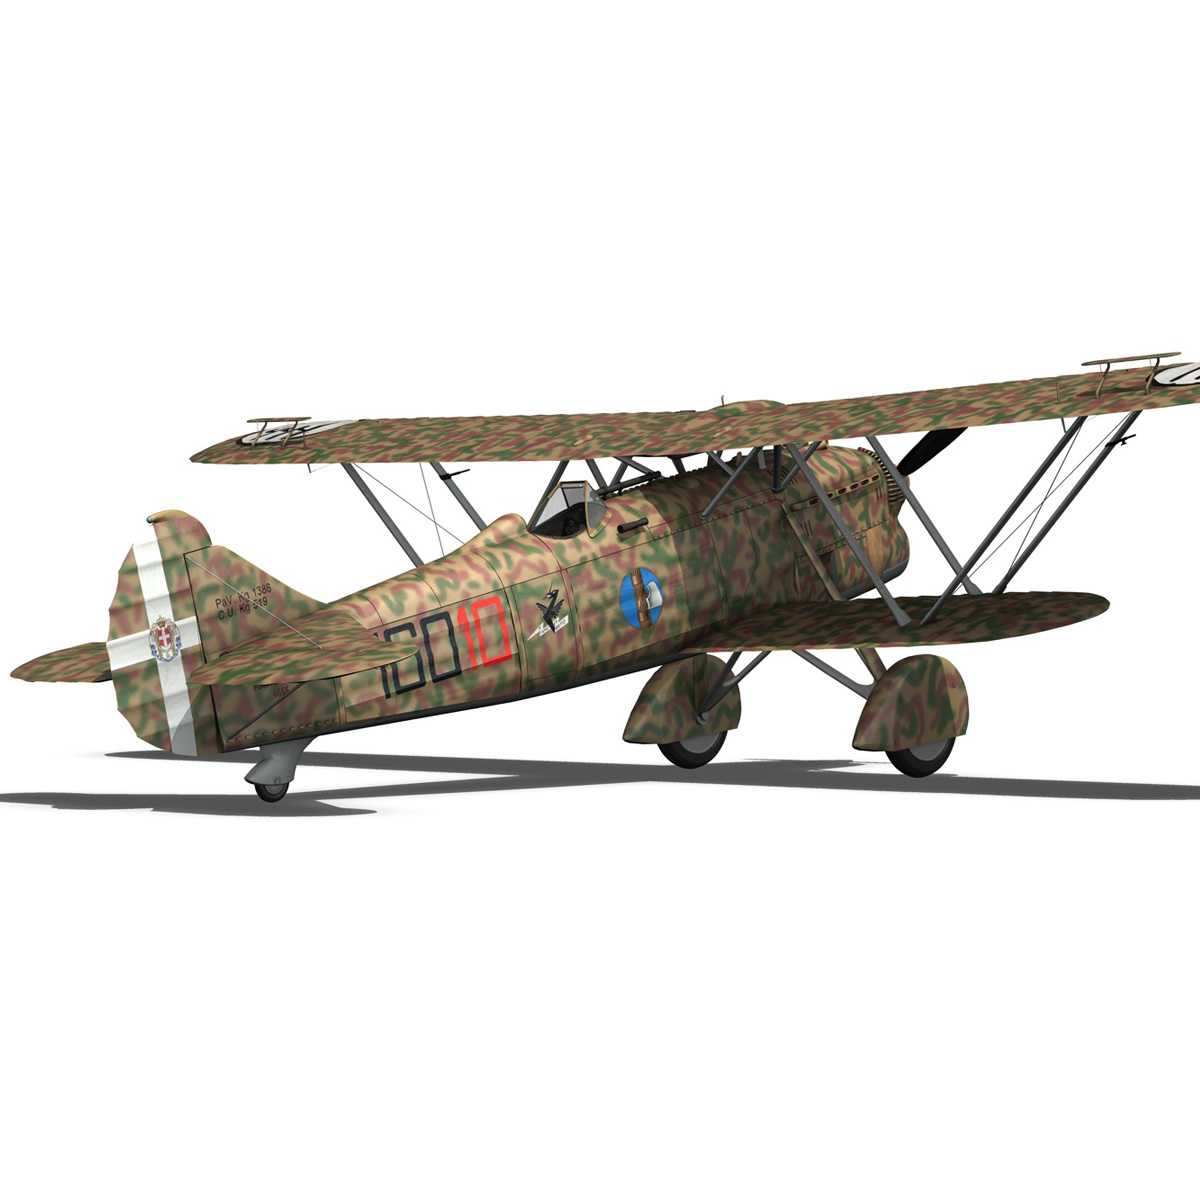 fiat cr.32 – italy airforce – 160 squadriglia 3d model fbx c4d lwo obj 268115